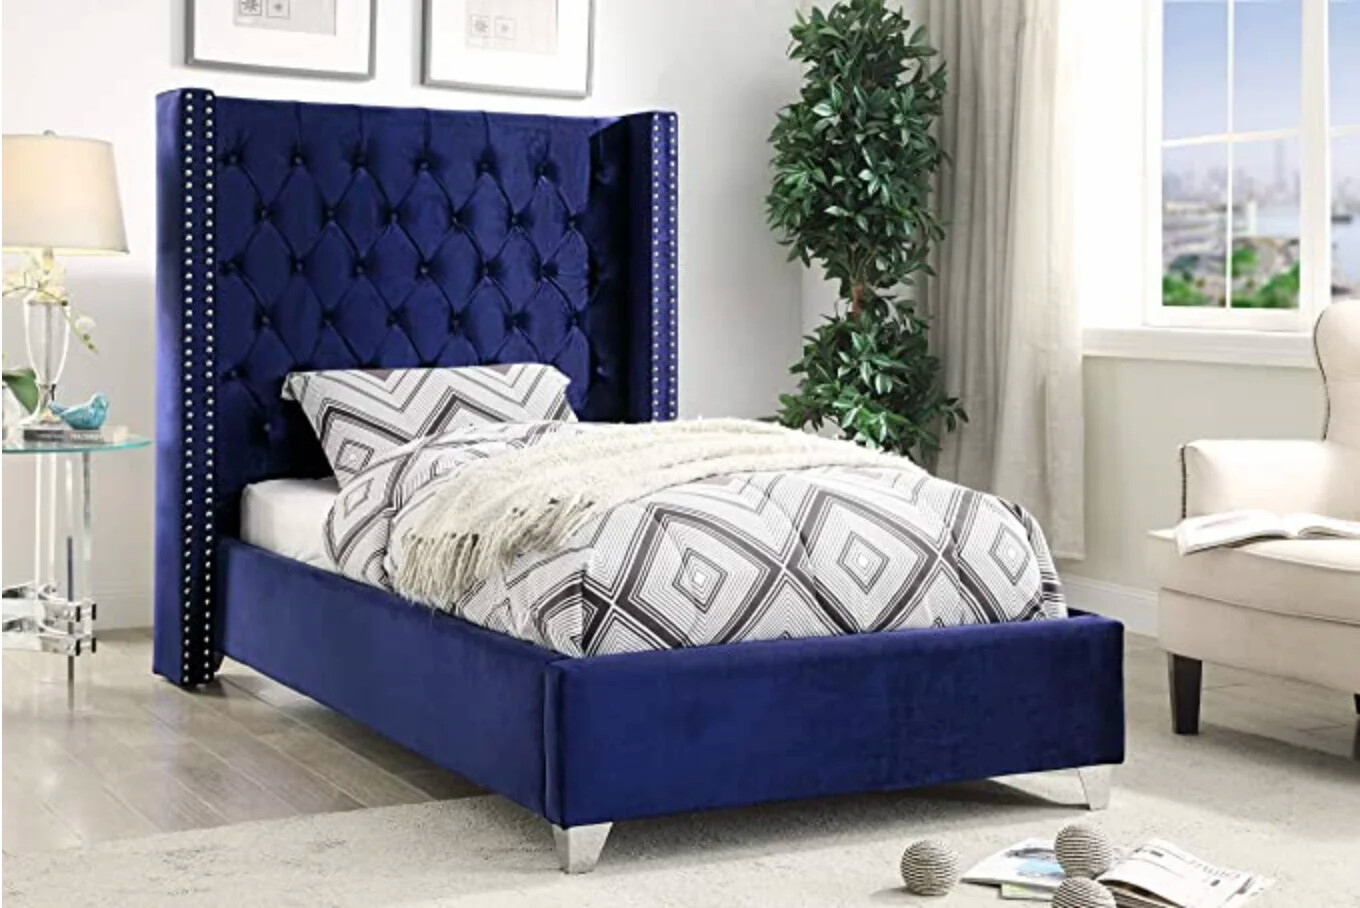 Uno Wing Bed in Blue Color